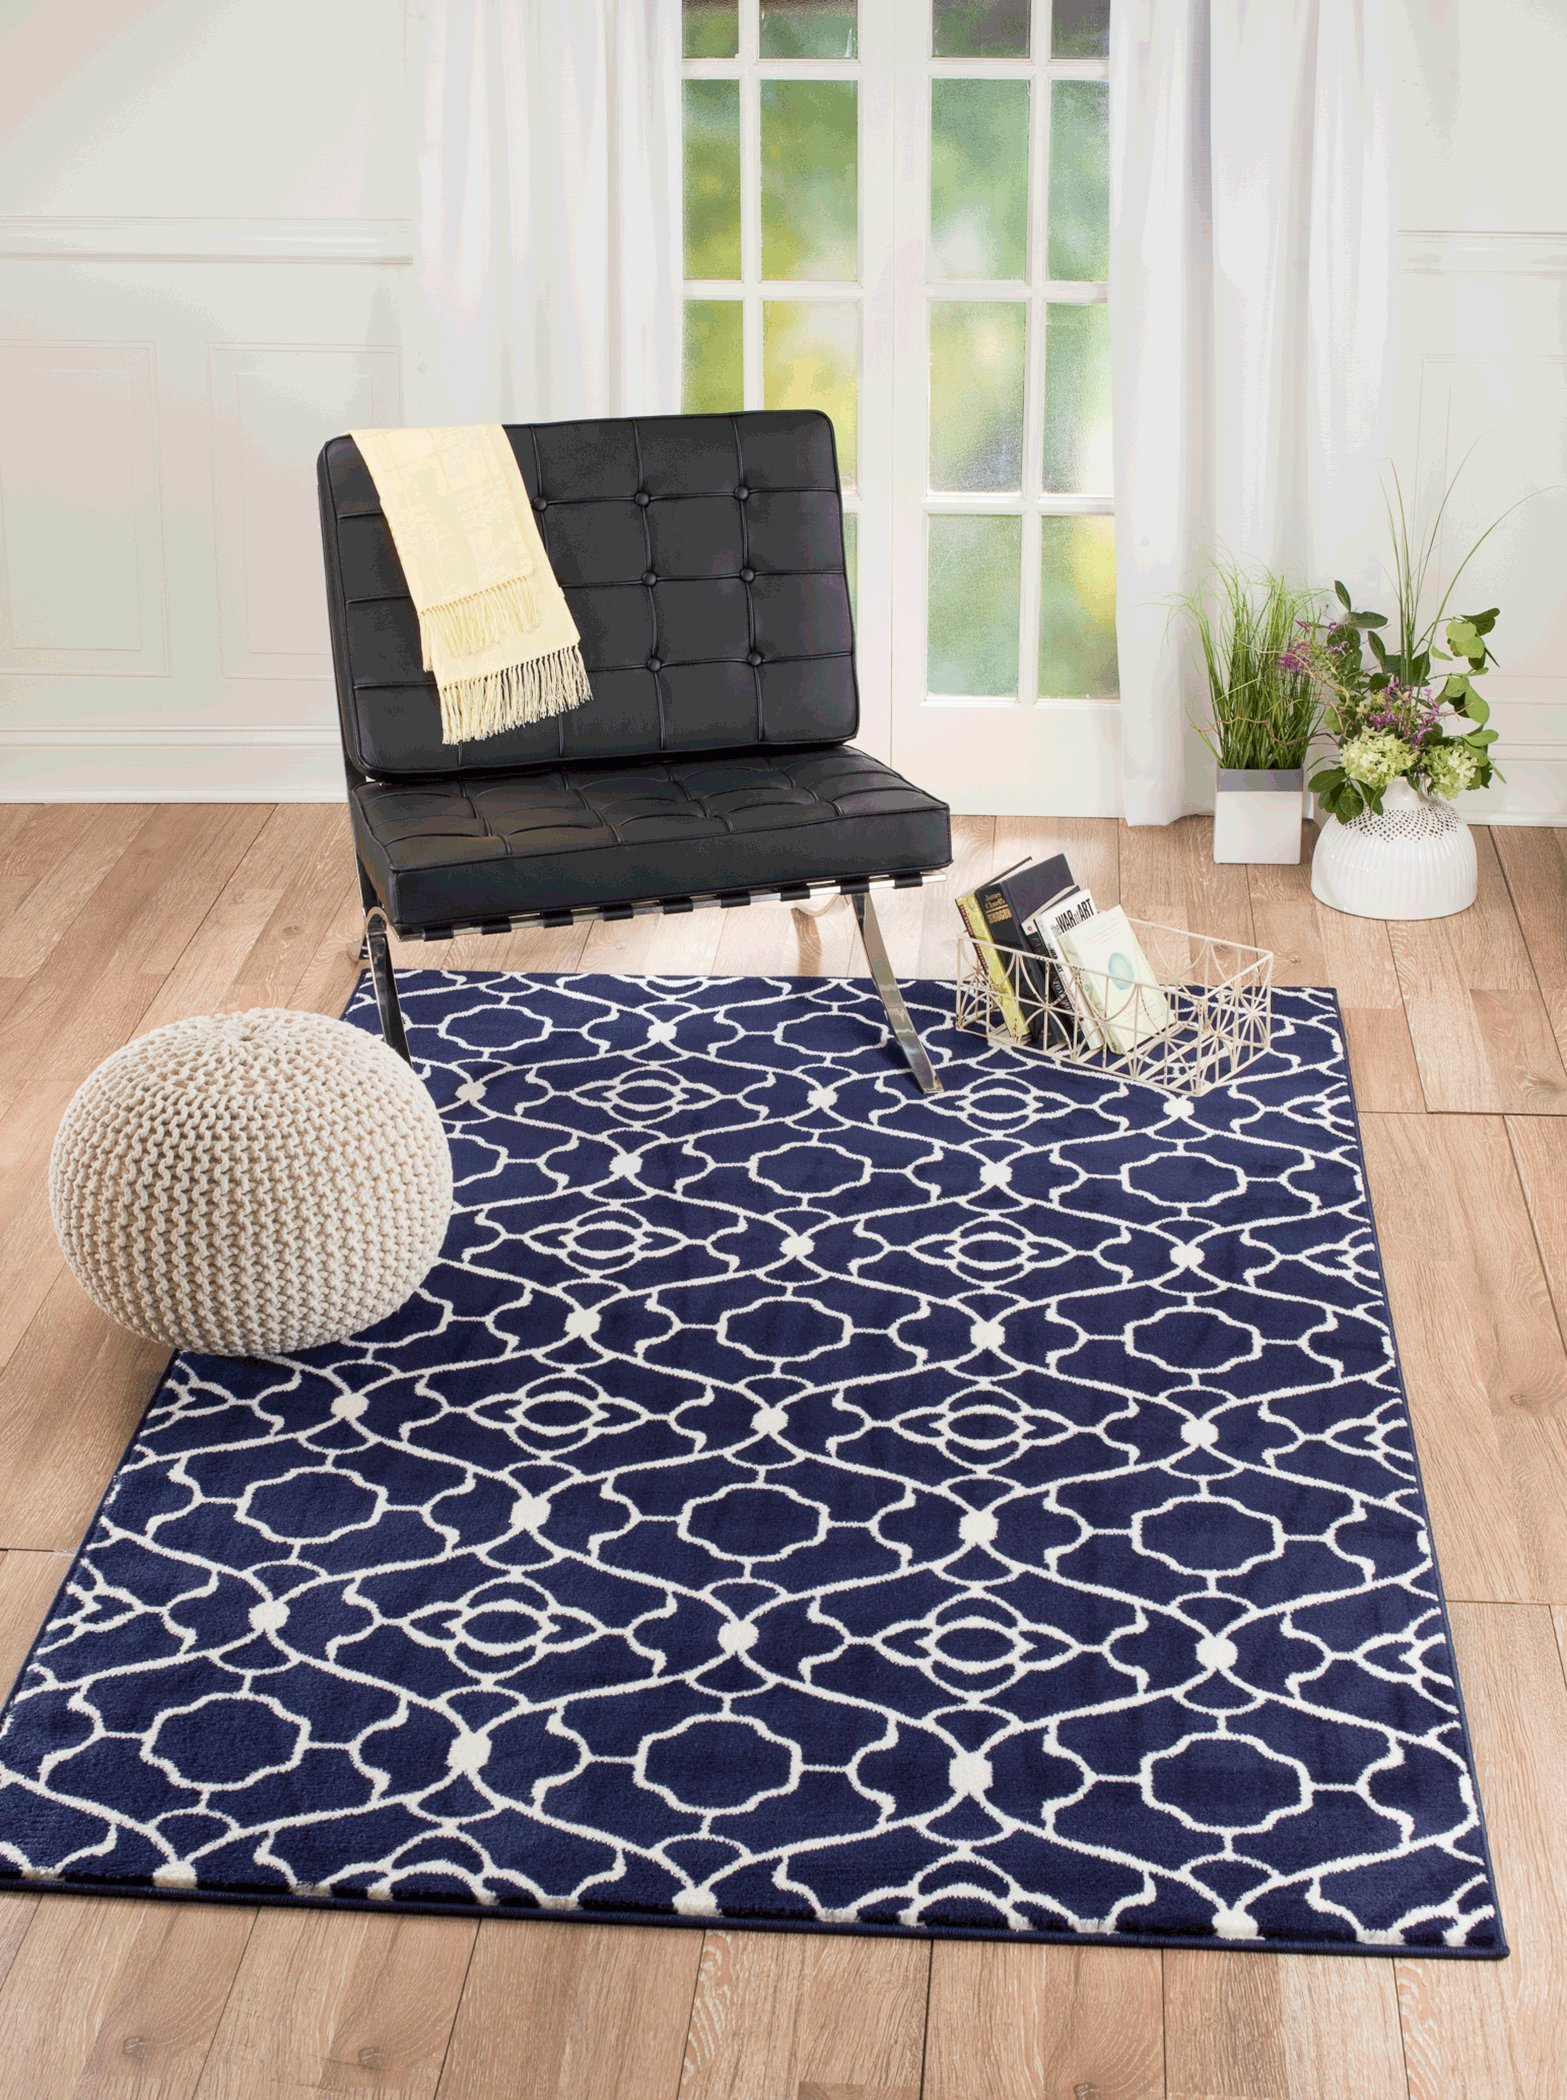 Summit Y7-ANVH-DF2M 15 New Area Rug Navy Blue Graden Modern Abstract Many Sizes Available , 2 x 3 actual is 22''x36''